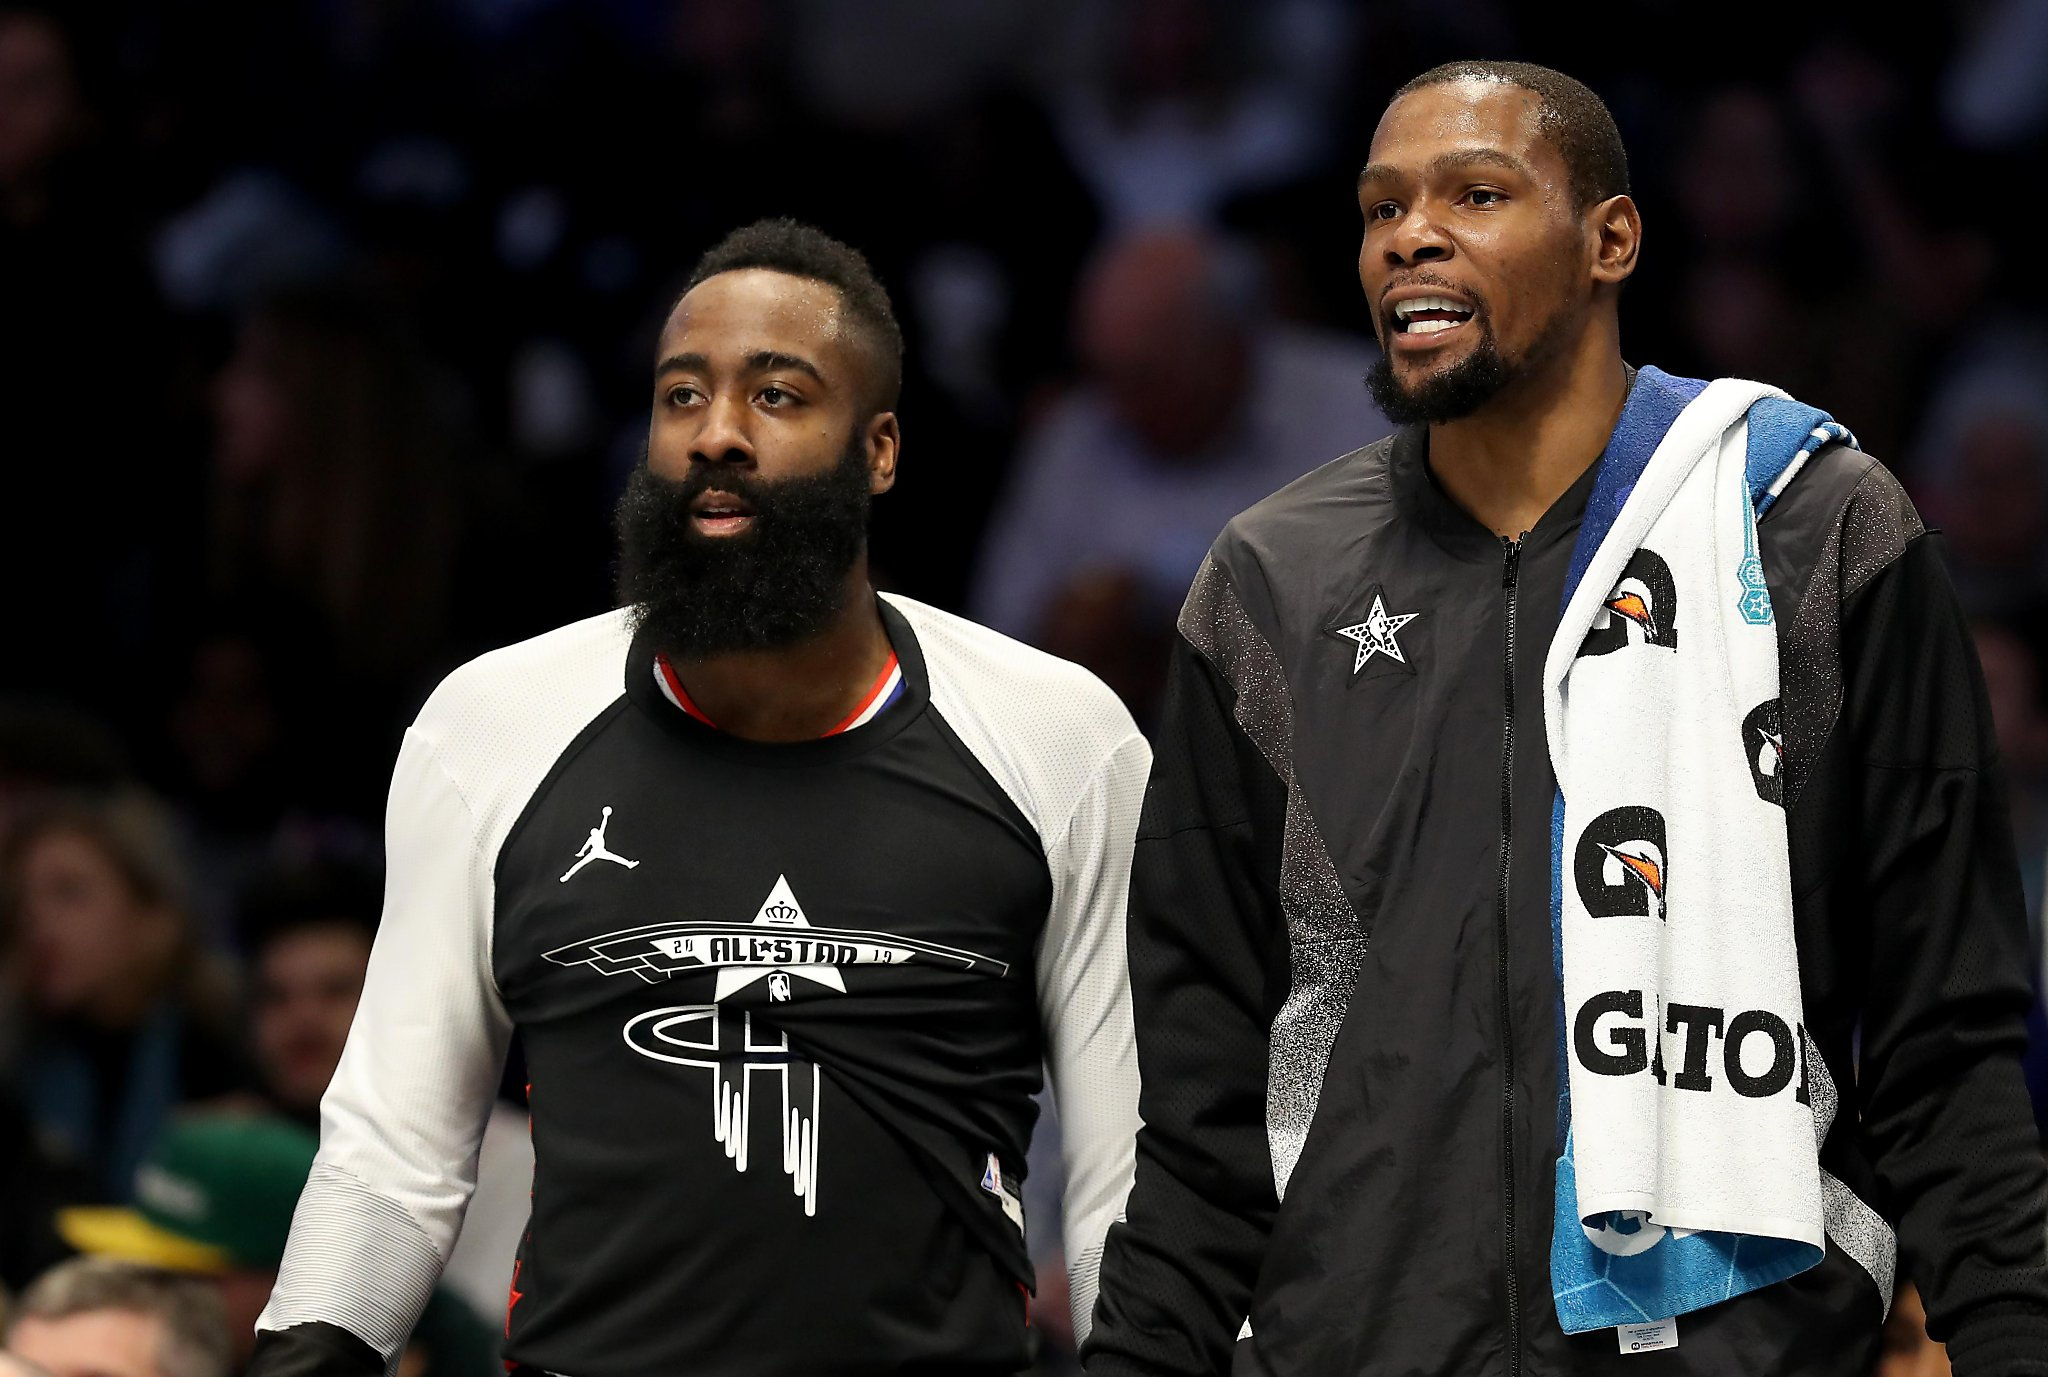 Nets' Big Three of Harden, Durant, Irving no match for Warriors' glory years